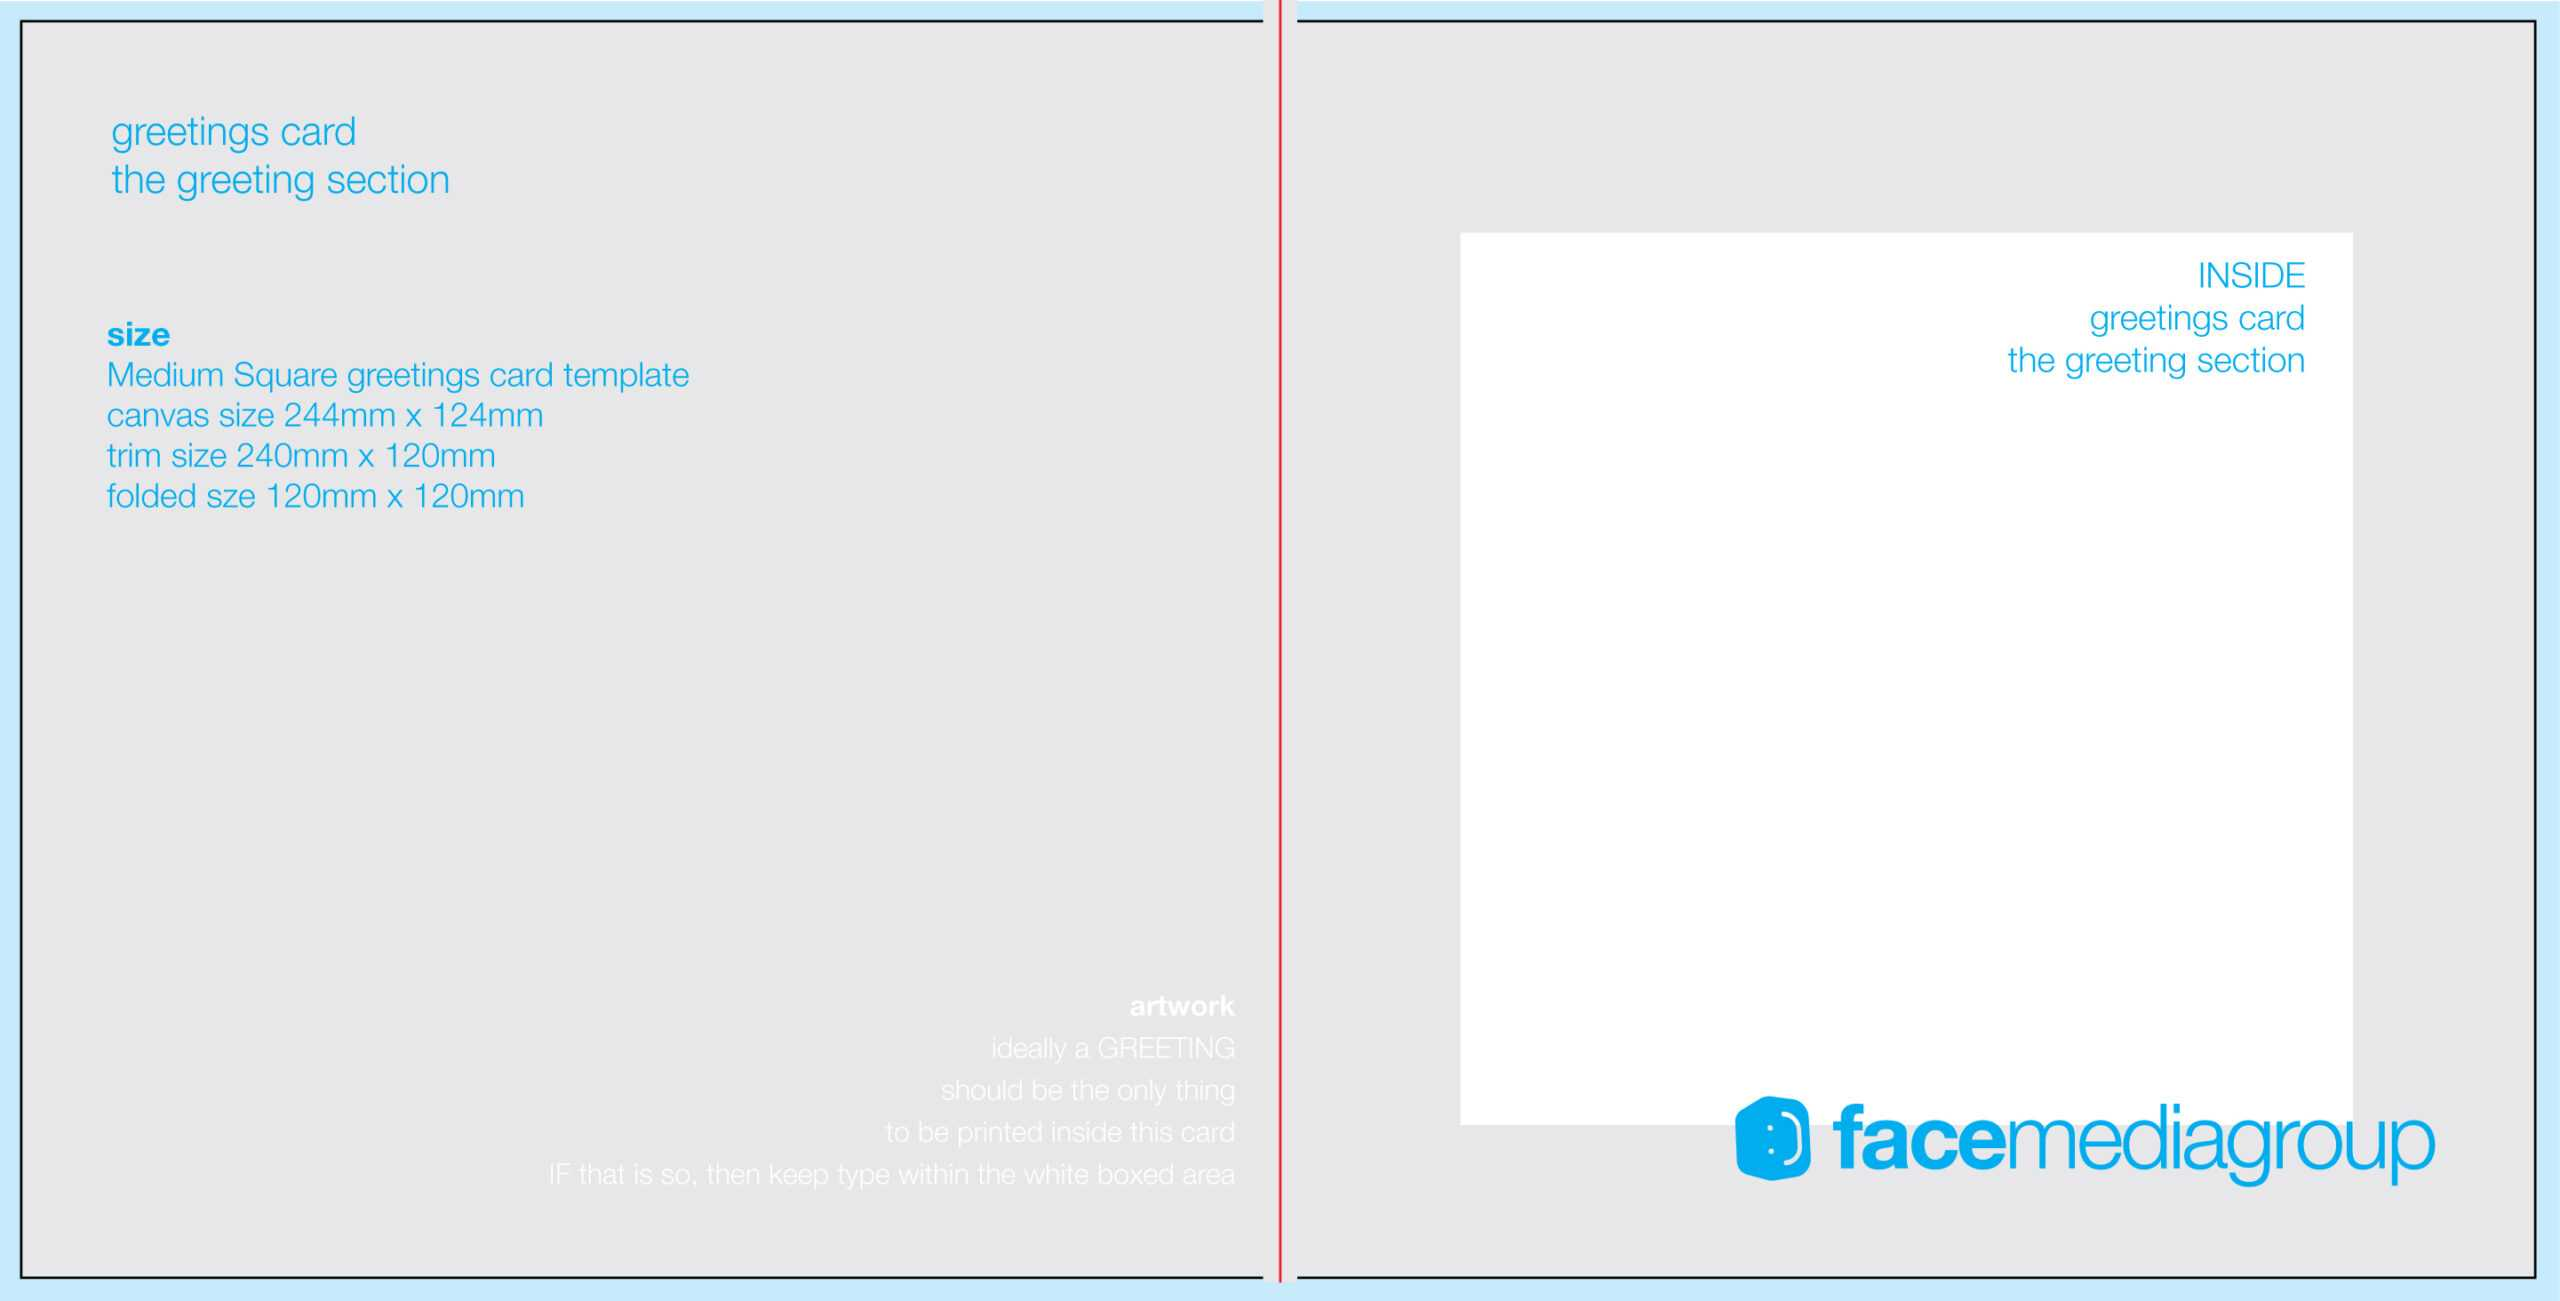 Microsoft Word Greeting Card Template Blank - Tunu.redmini.co For Free Blank Greeting Card Templates For Word